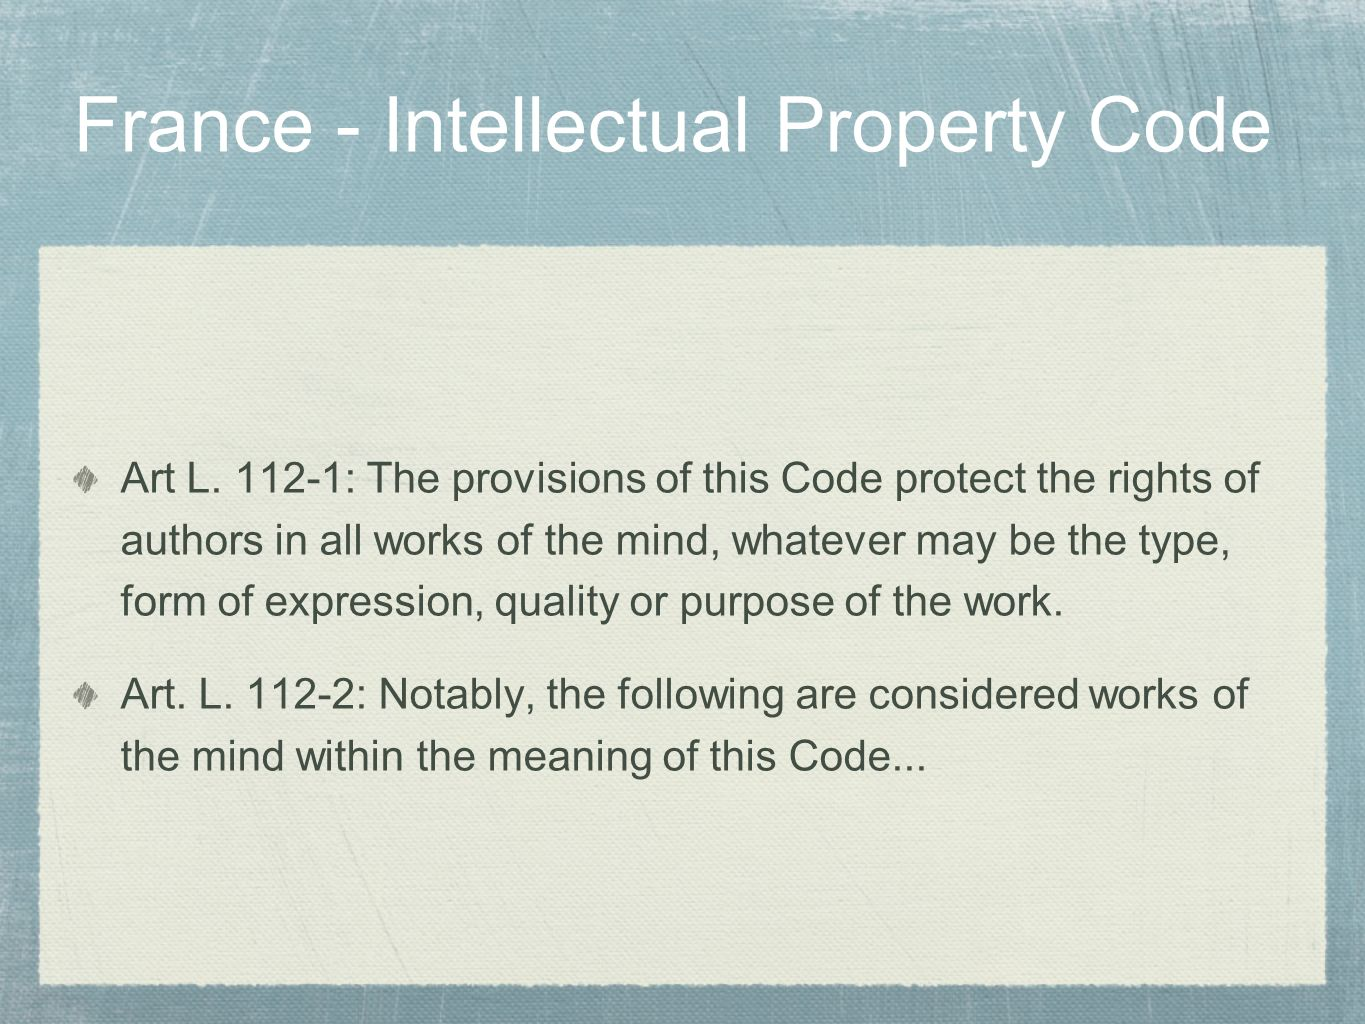 France - Intellectual Property Code Art L. 112-1: The provisions of this Code protect the rights of authors in all works of the mind, whatever may be